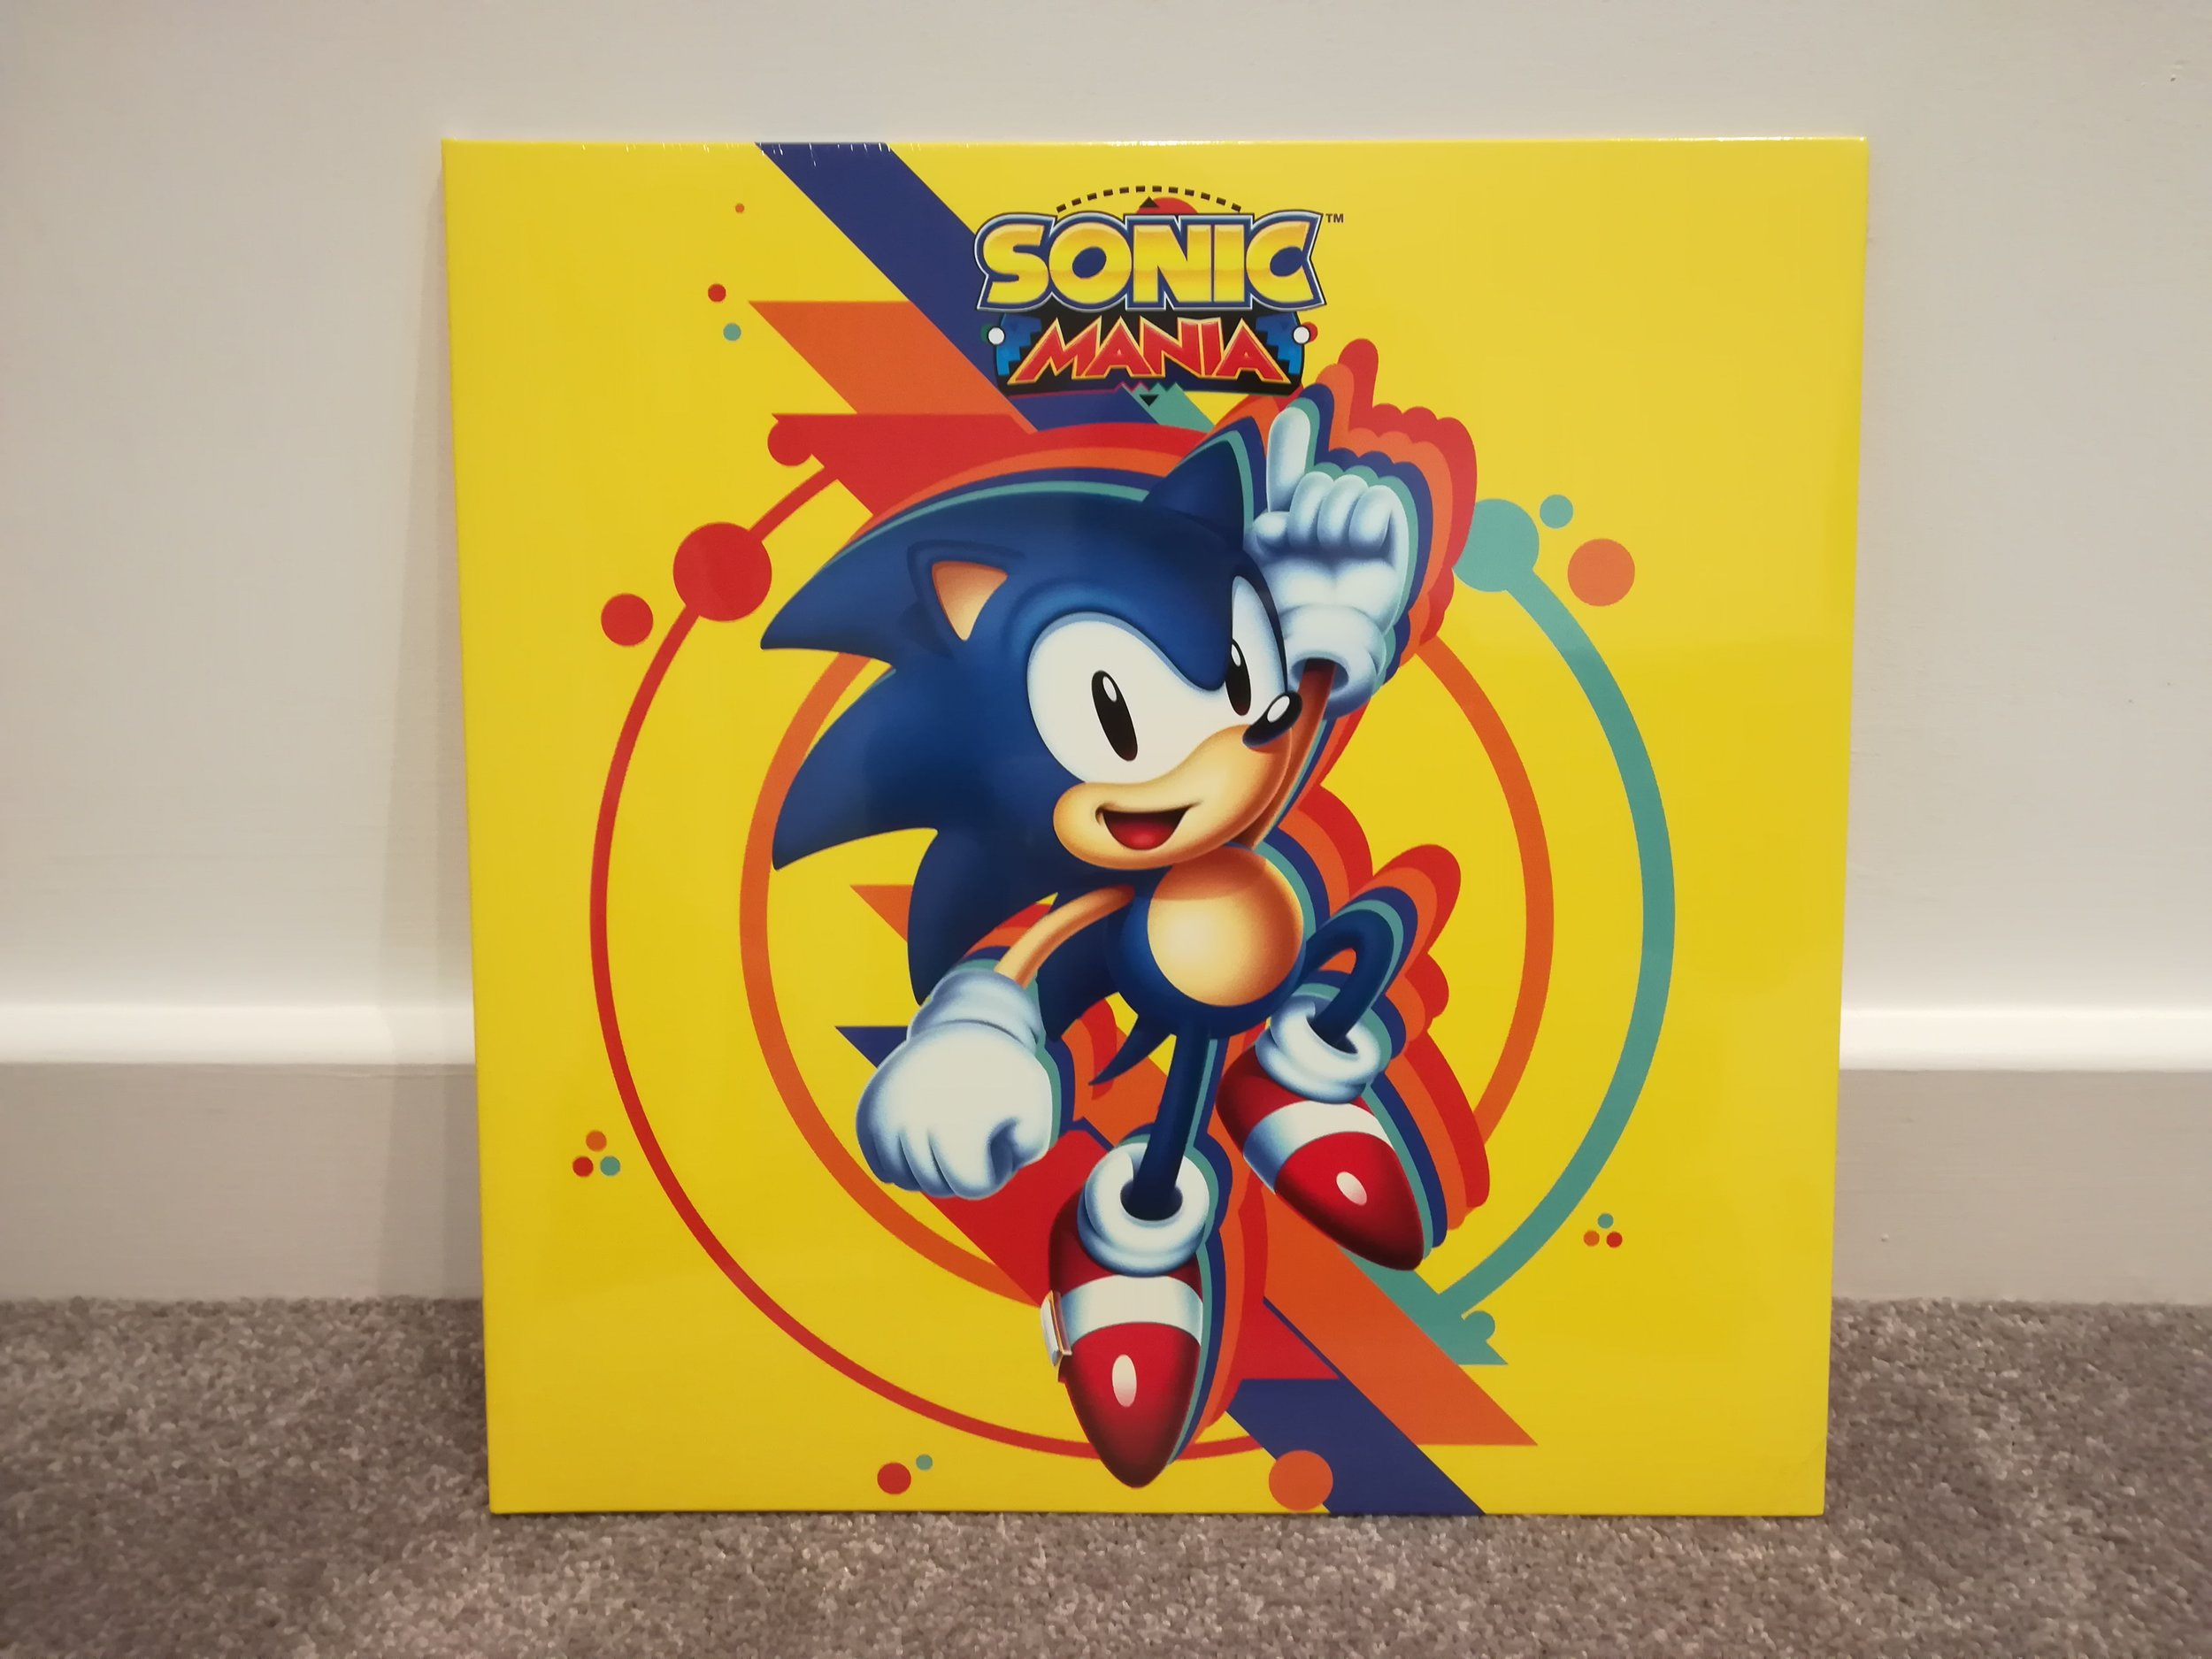 Classic Sonic takes front-centre on the cover of this soundtrack